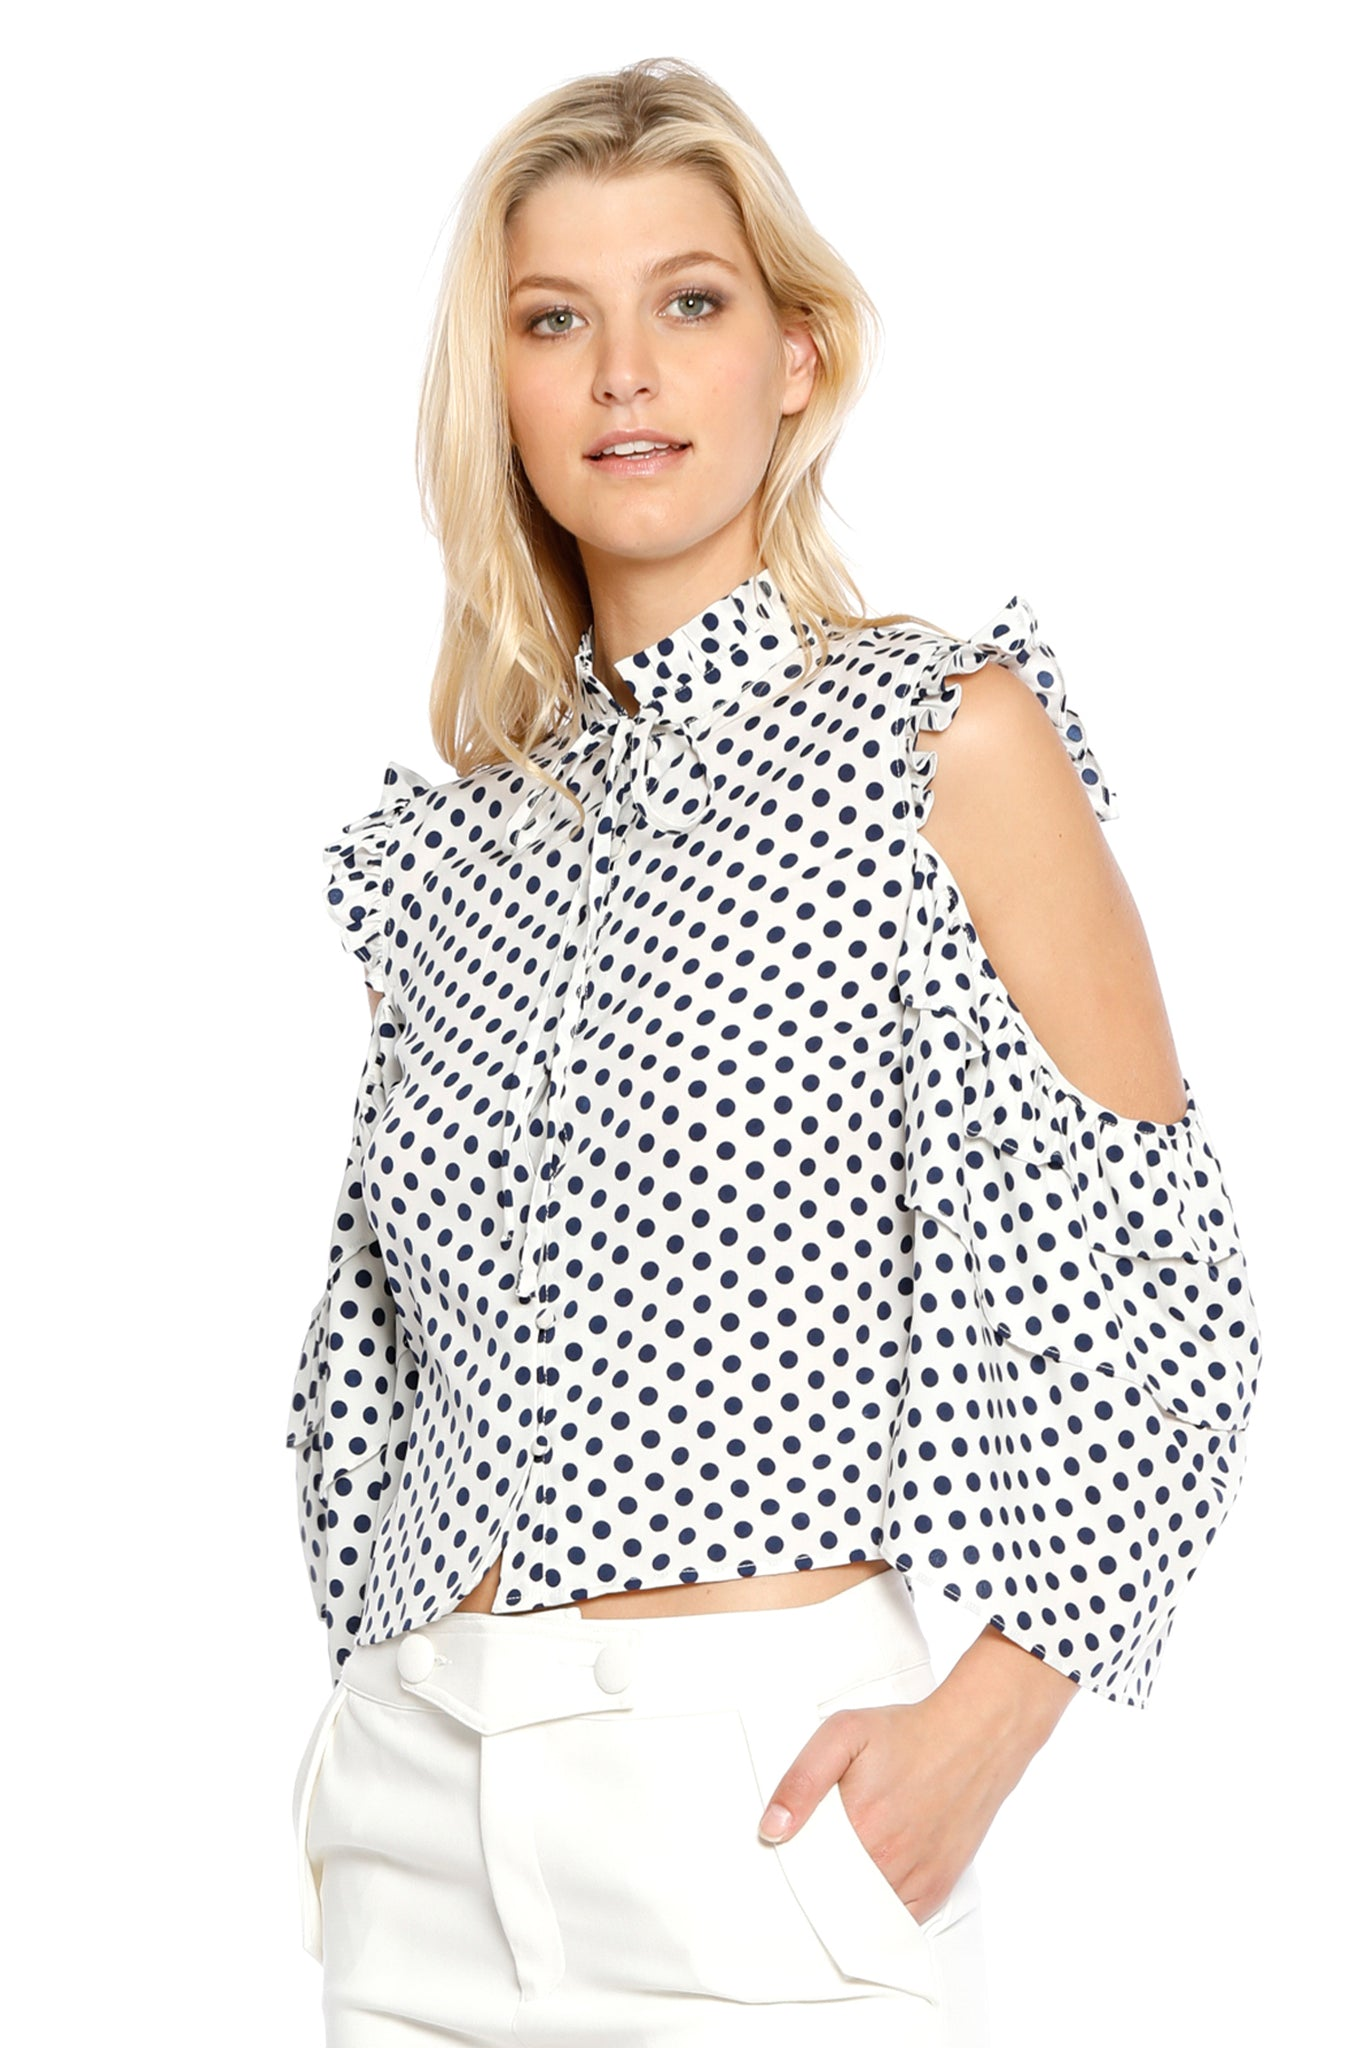 Front view (pose) of Silvia Top, blue polka dot top with batwing sleeves, shoulder cuts, and slight ruffles. 100% polyester and machine-washable.